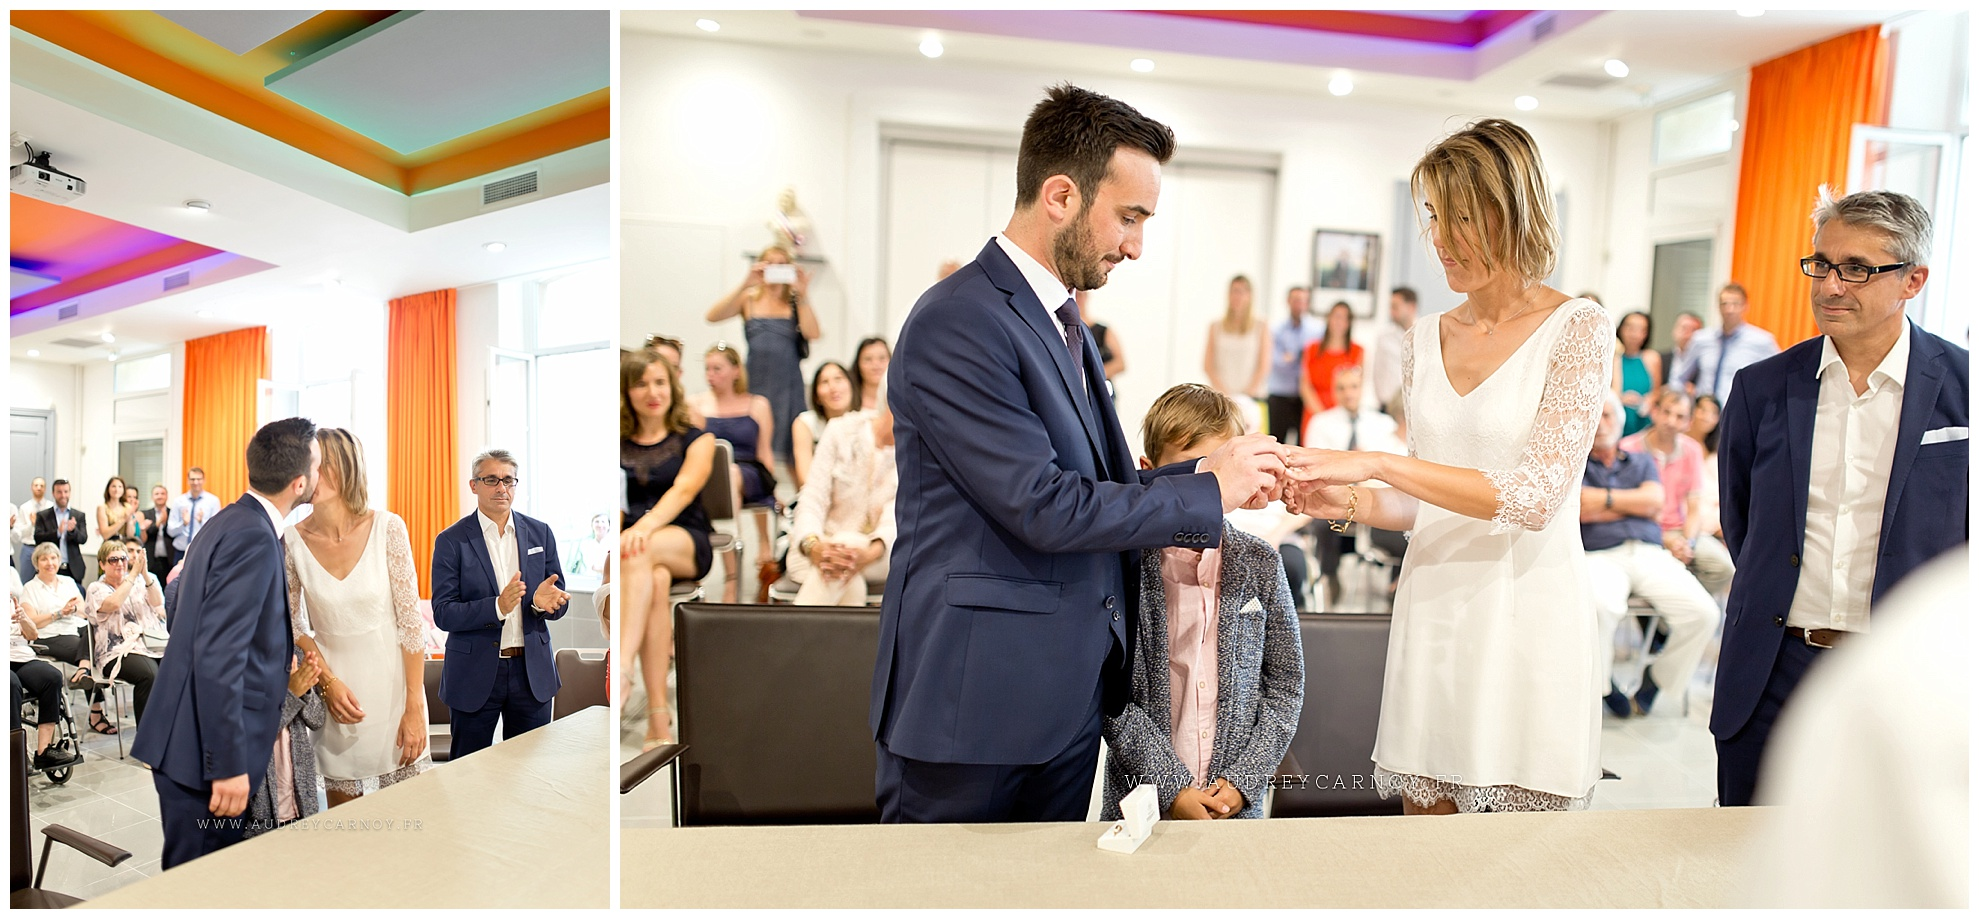 Mariage Pertuis | Laurence & Anthony 26